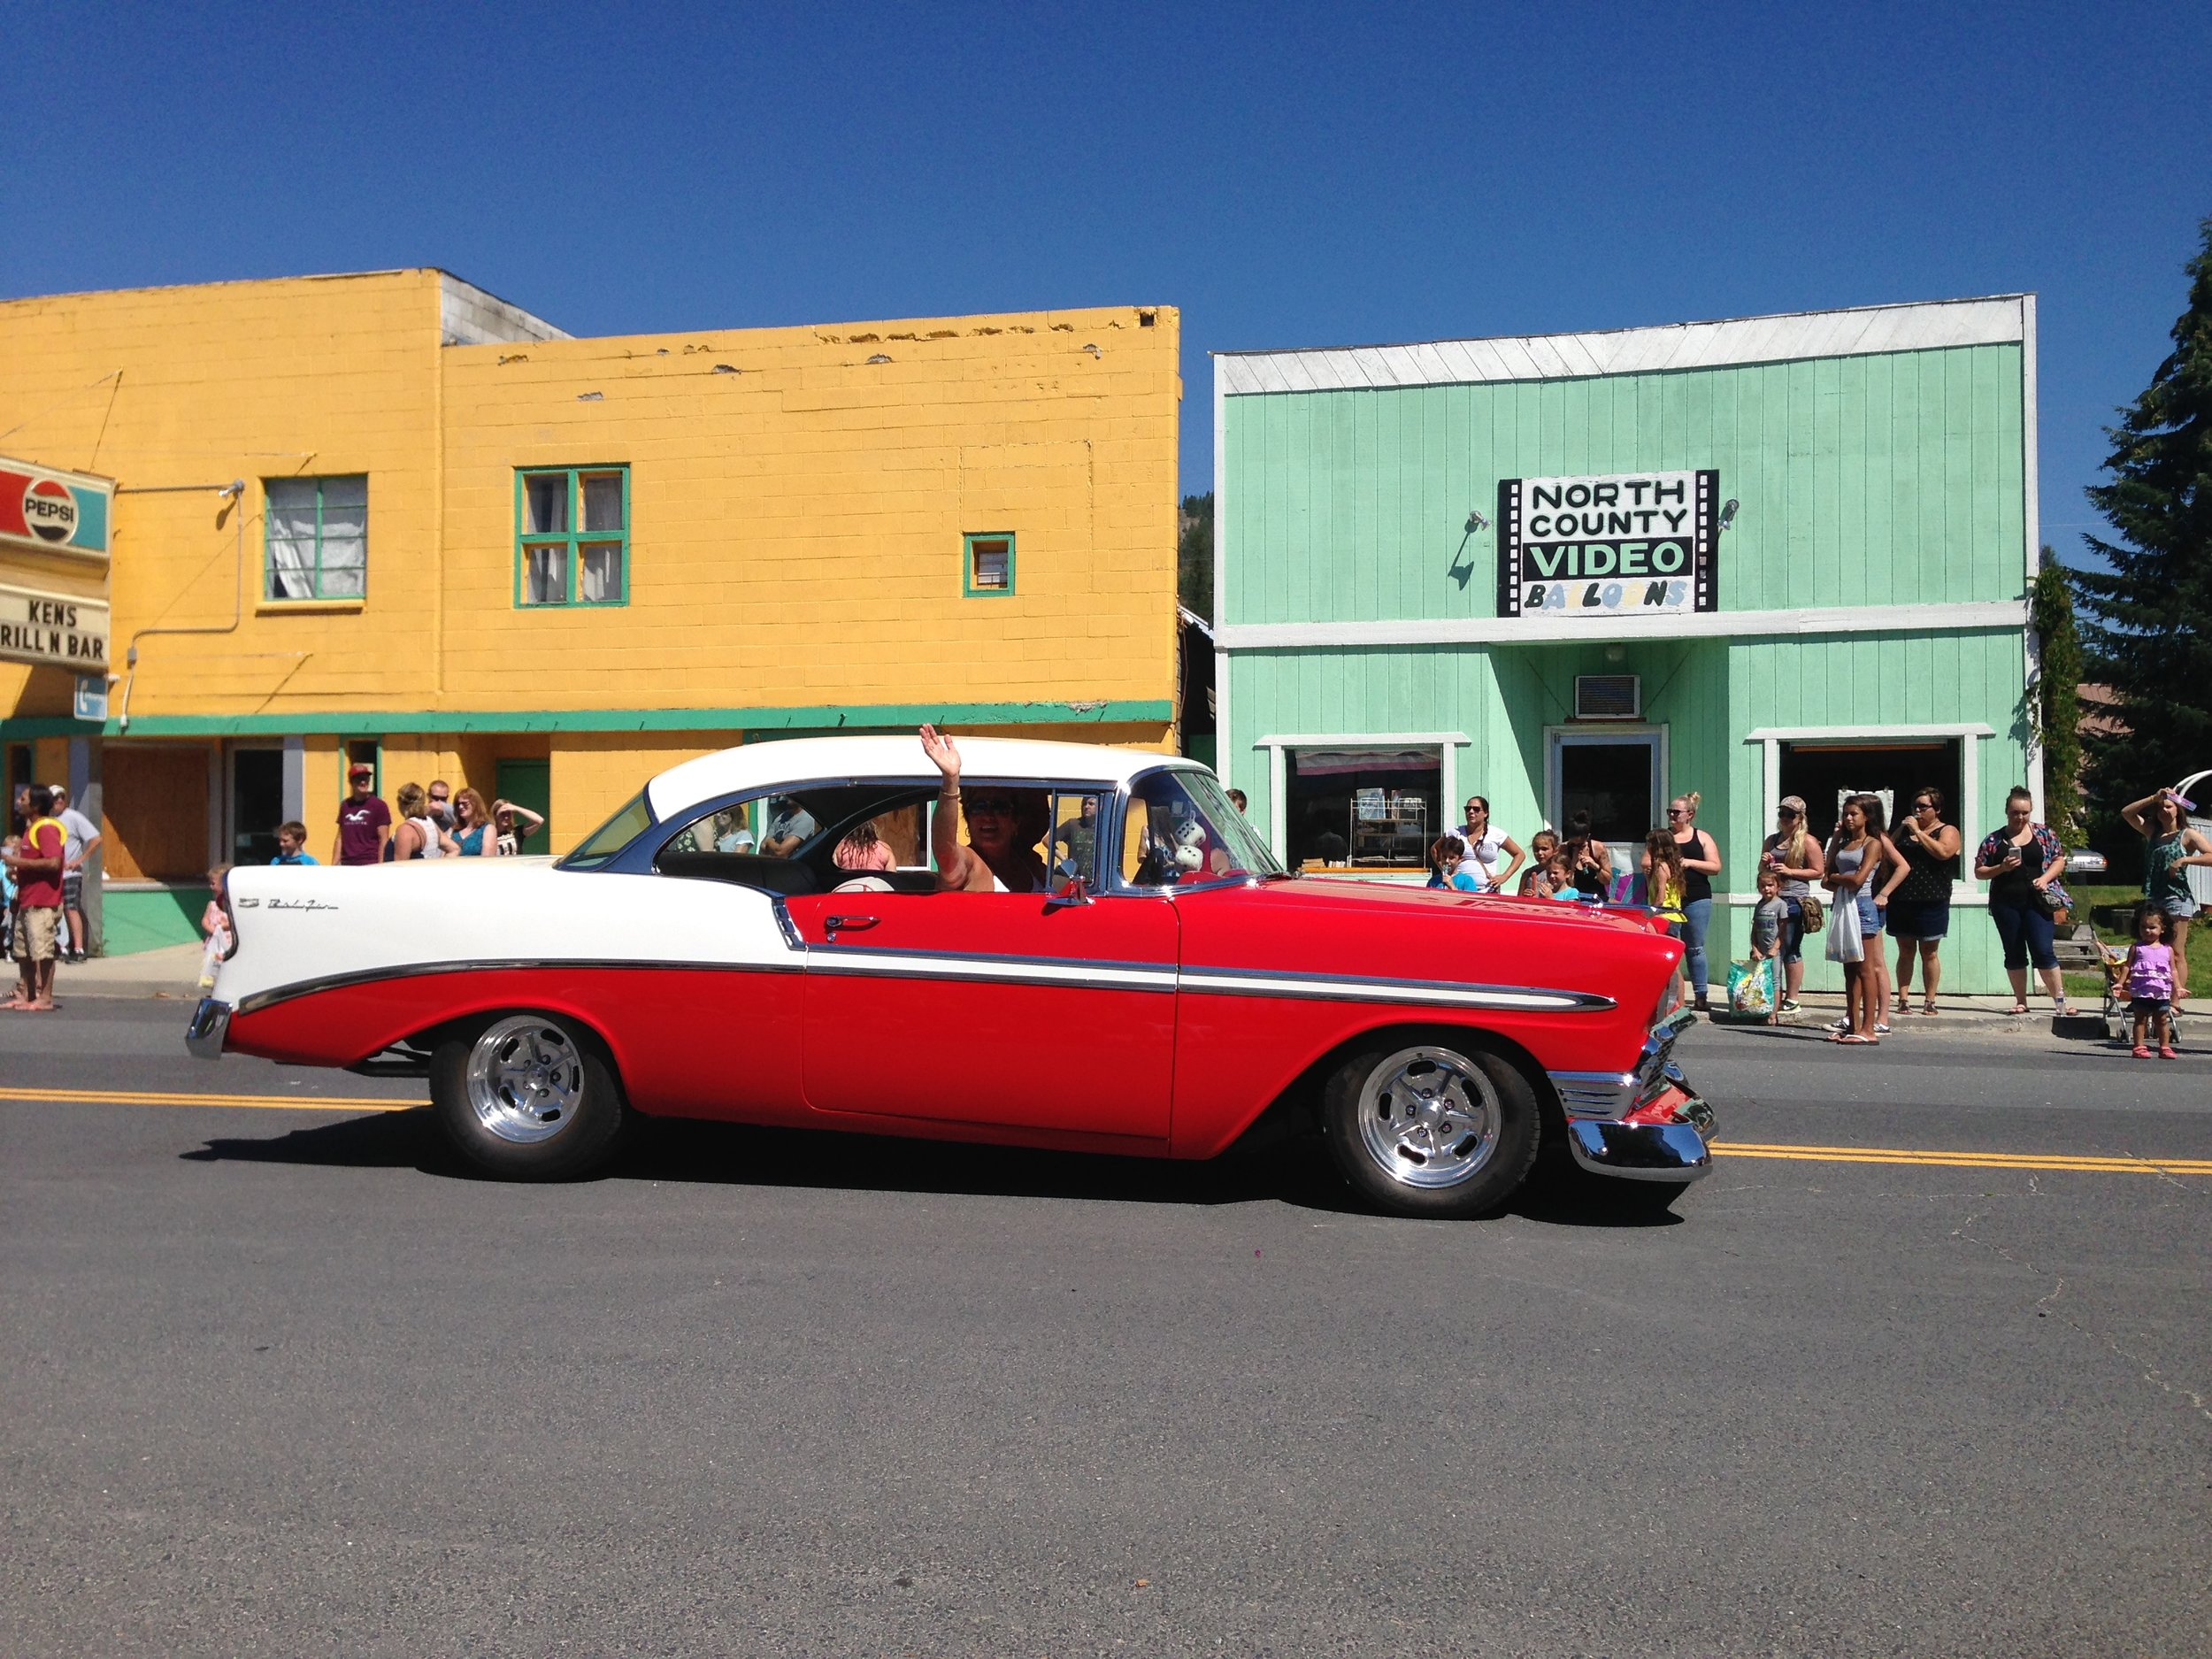 The nicest car in the parade. Our friends Stan and Sara.